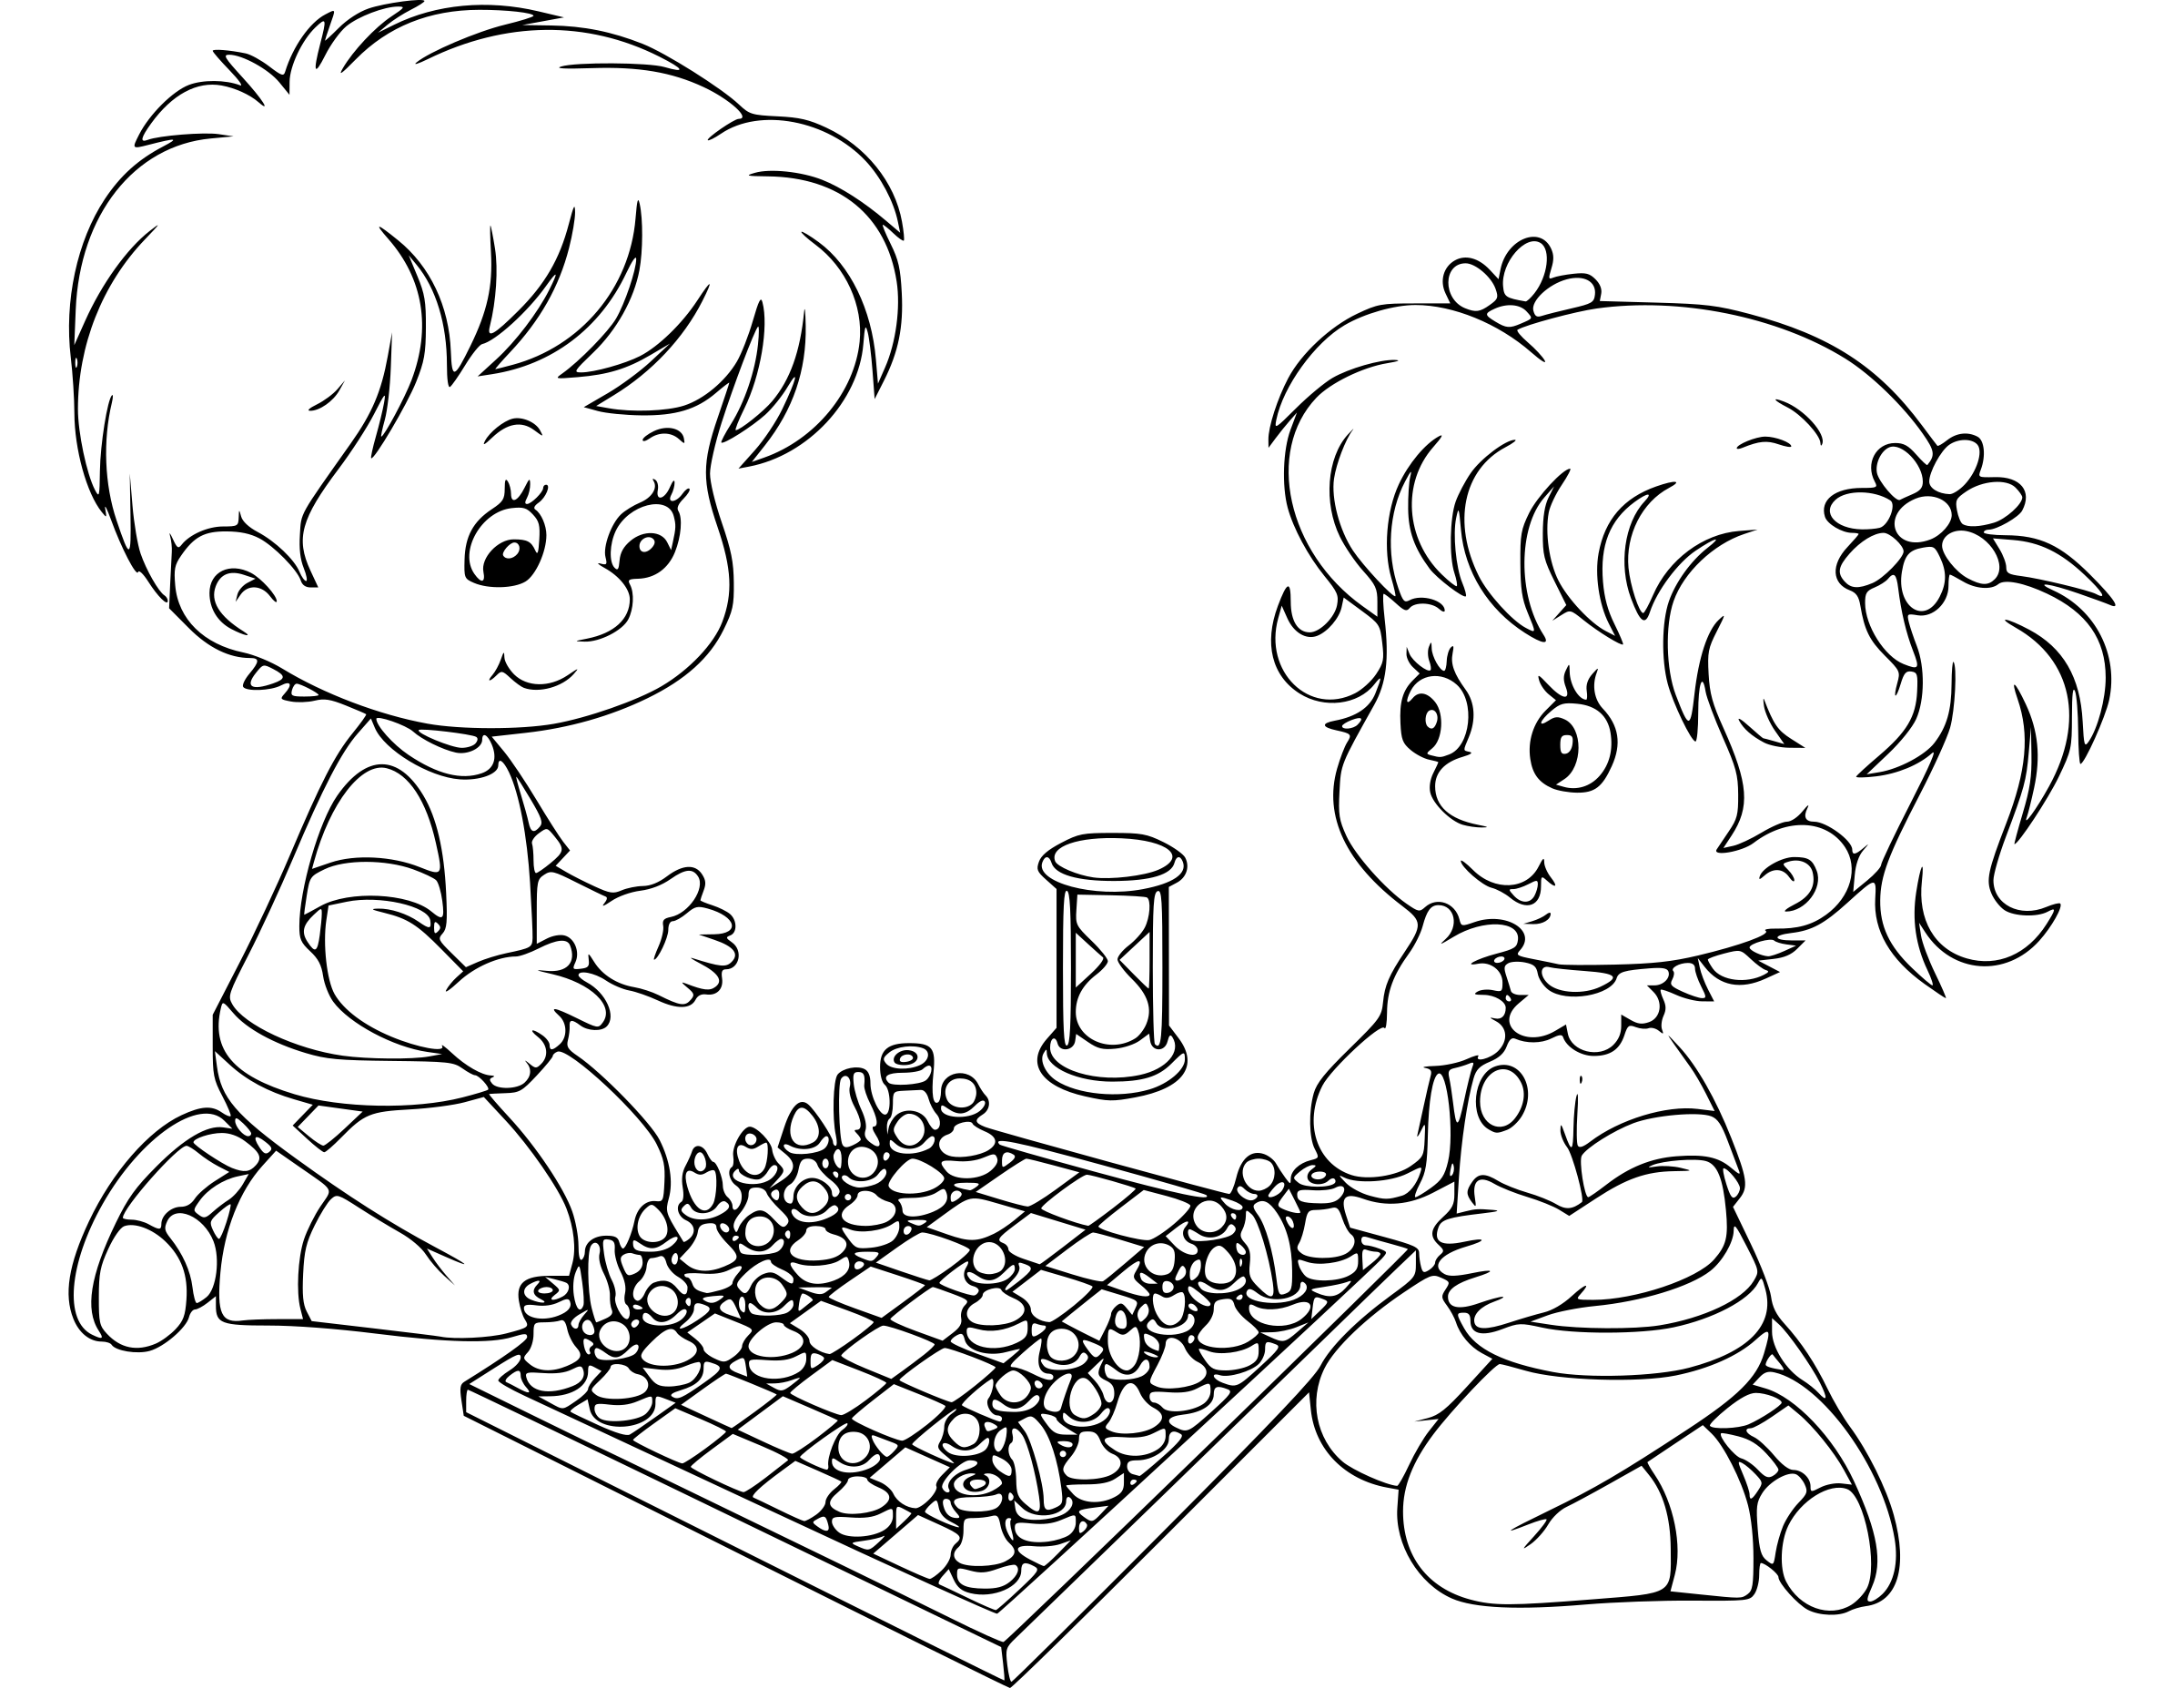 Chess coloring book  / Dibujo Ajedrez para colorear -17- by DG-RA